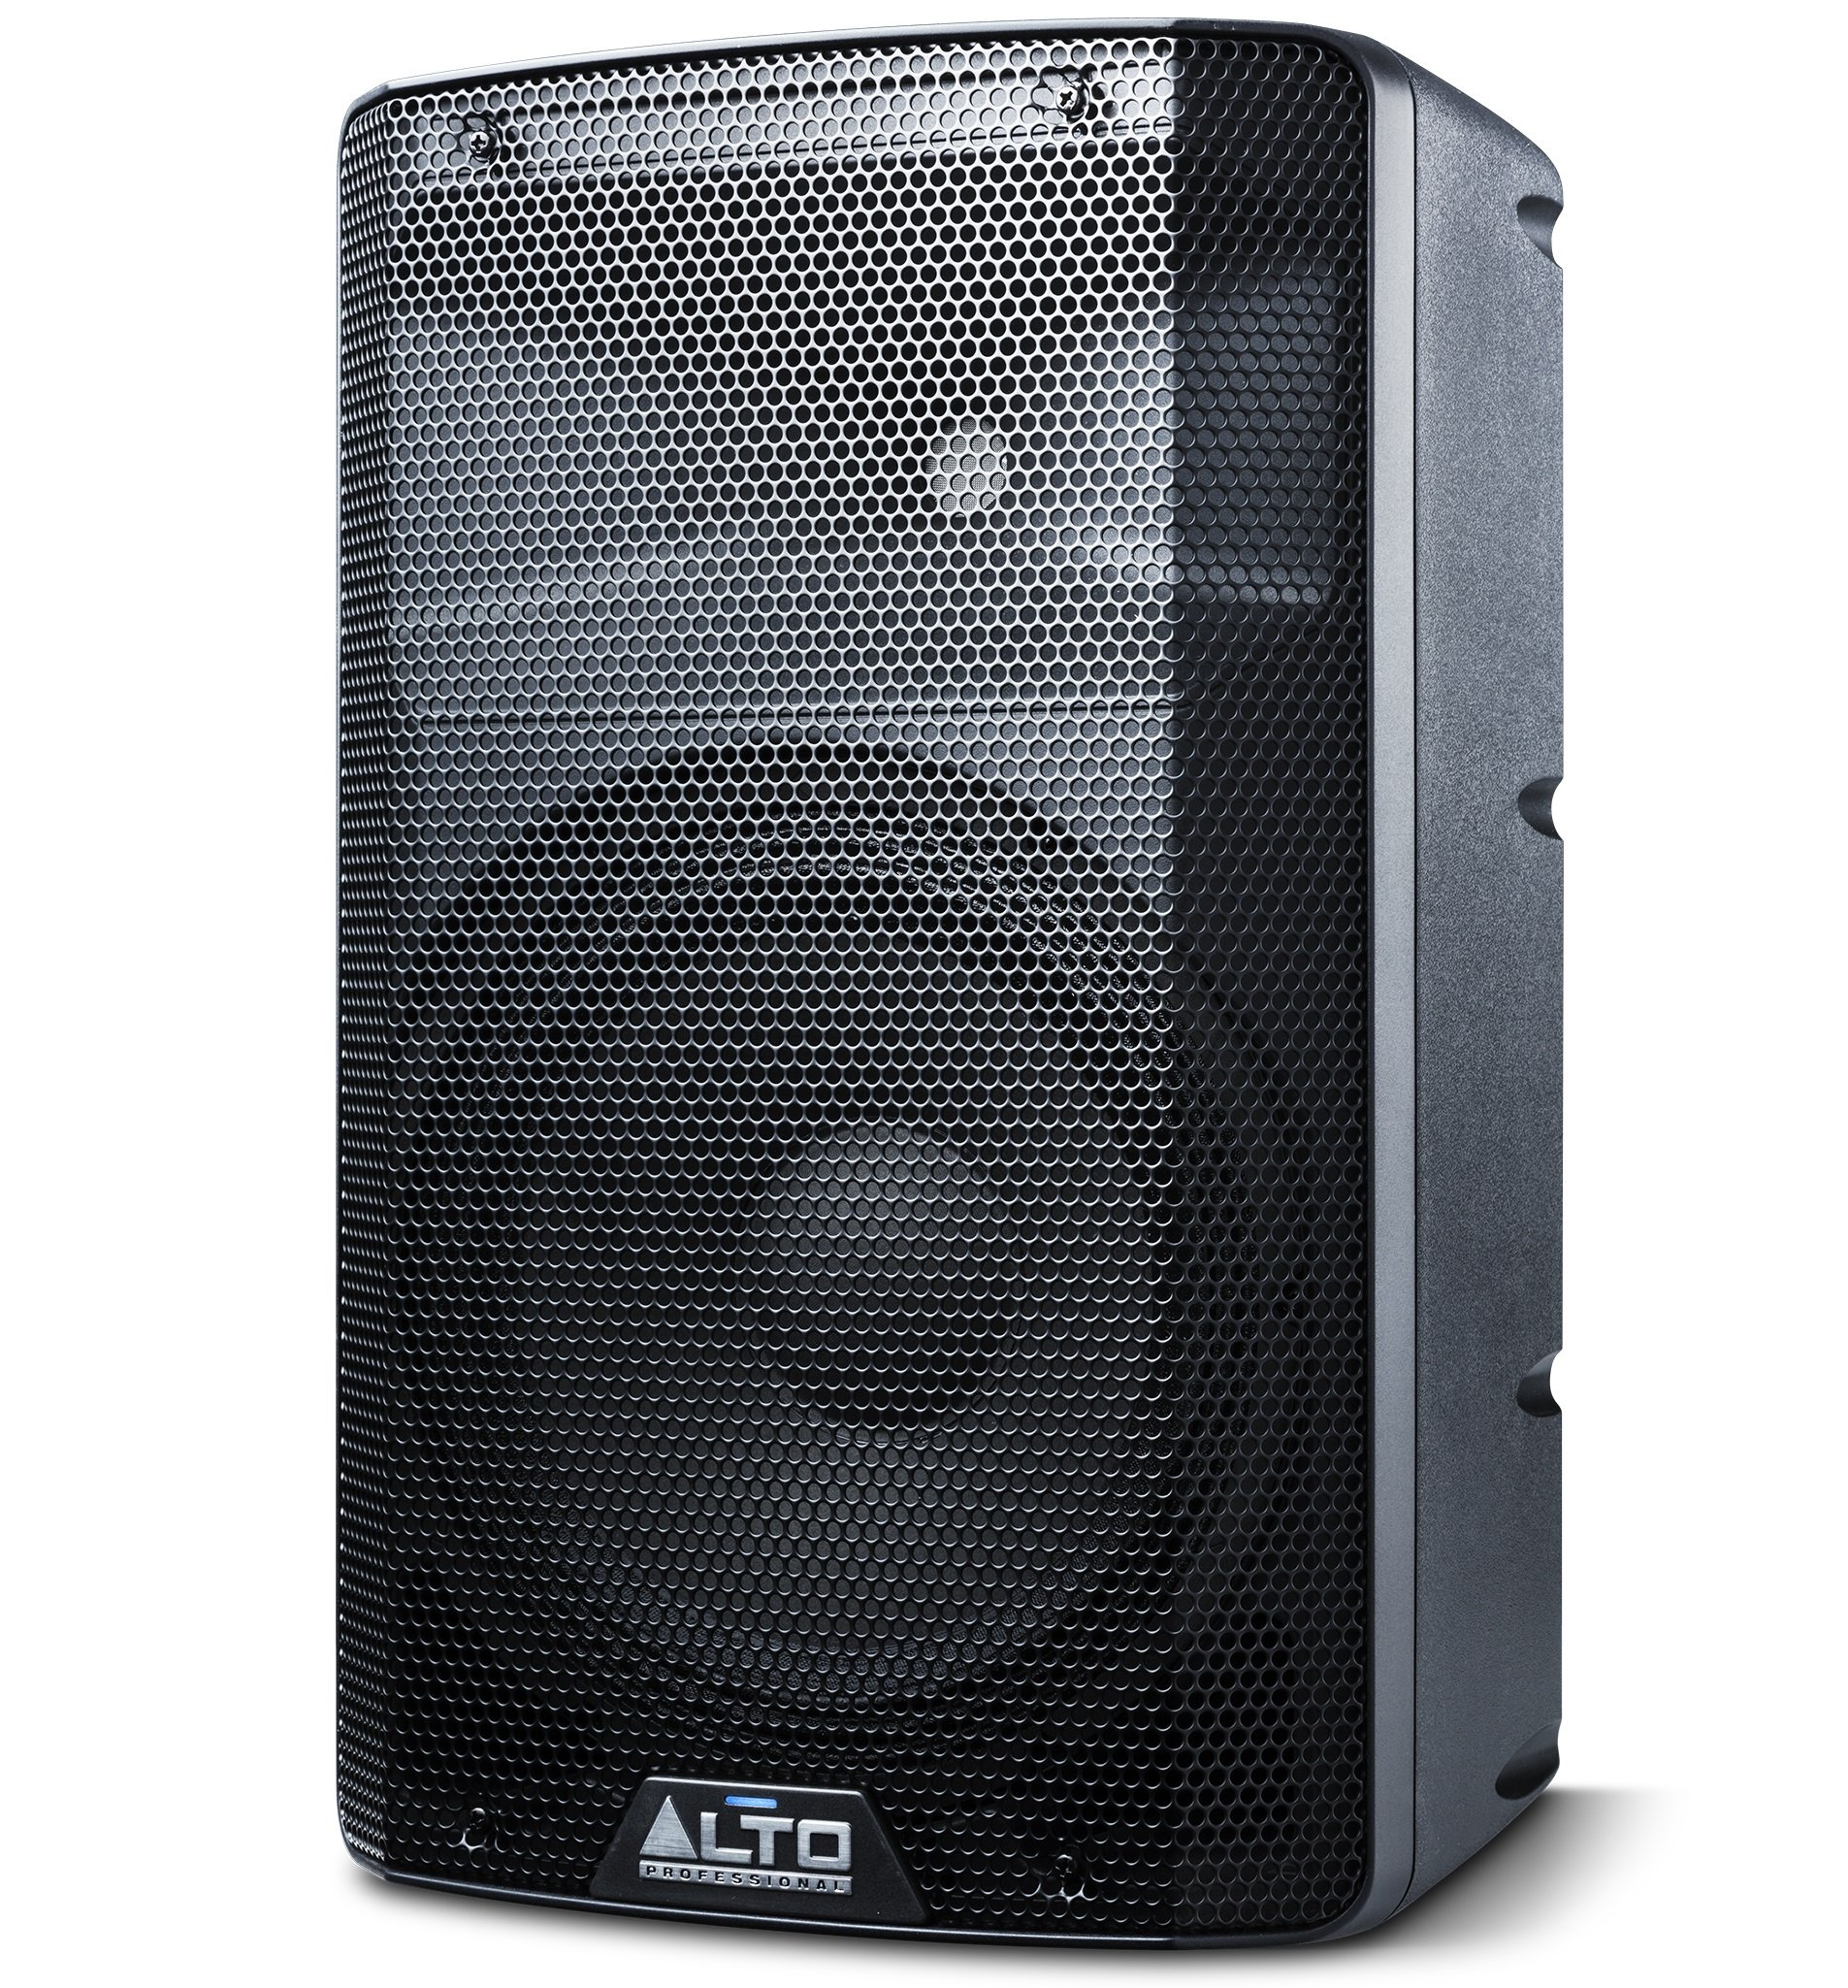 Alto Professional TX210 | 300-Watt 10-Inch 2-Way Powered Loudspeakers With Active Crossover, Performance-Driven Connectivity and Integrated Analogue Limiter